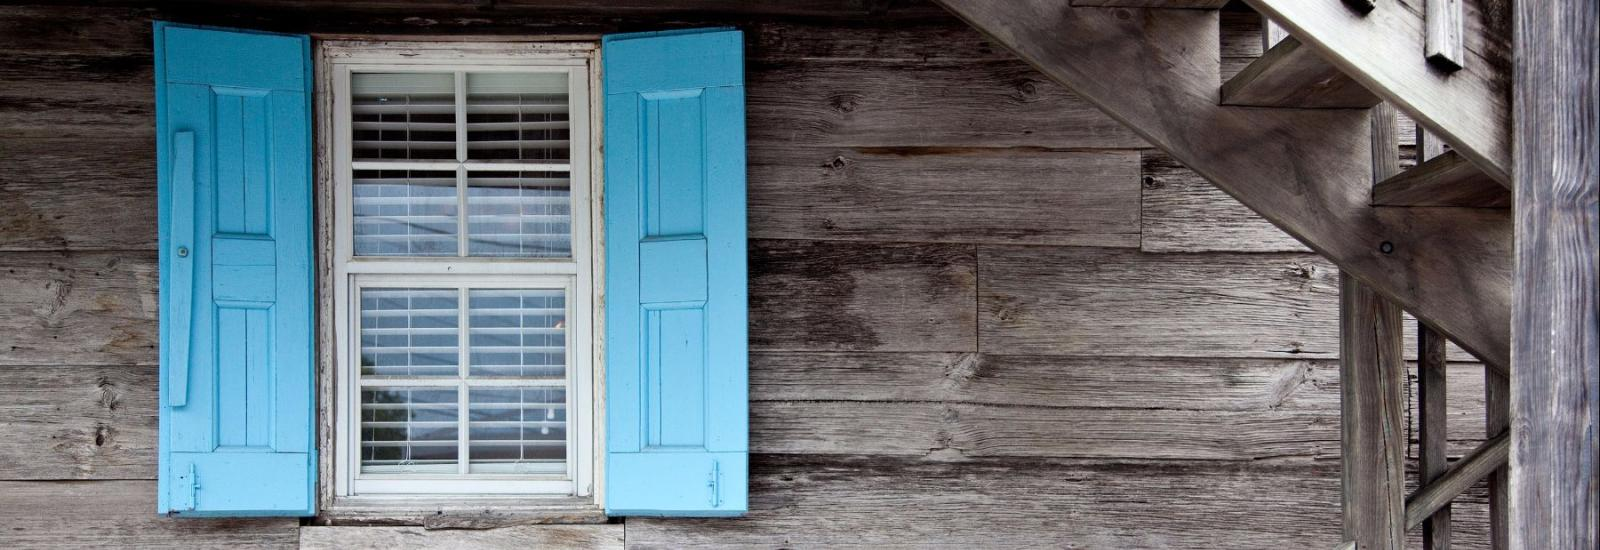 shutters-caribbean-architecture-door-37827.jpg